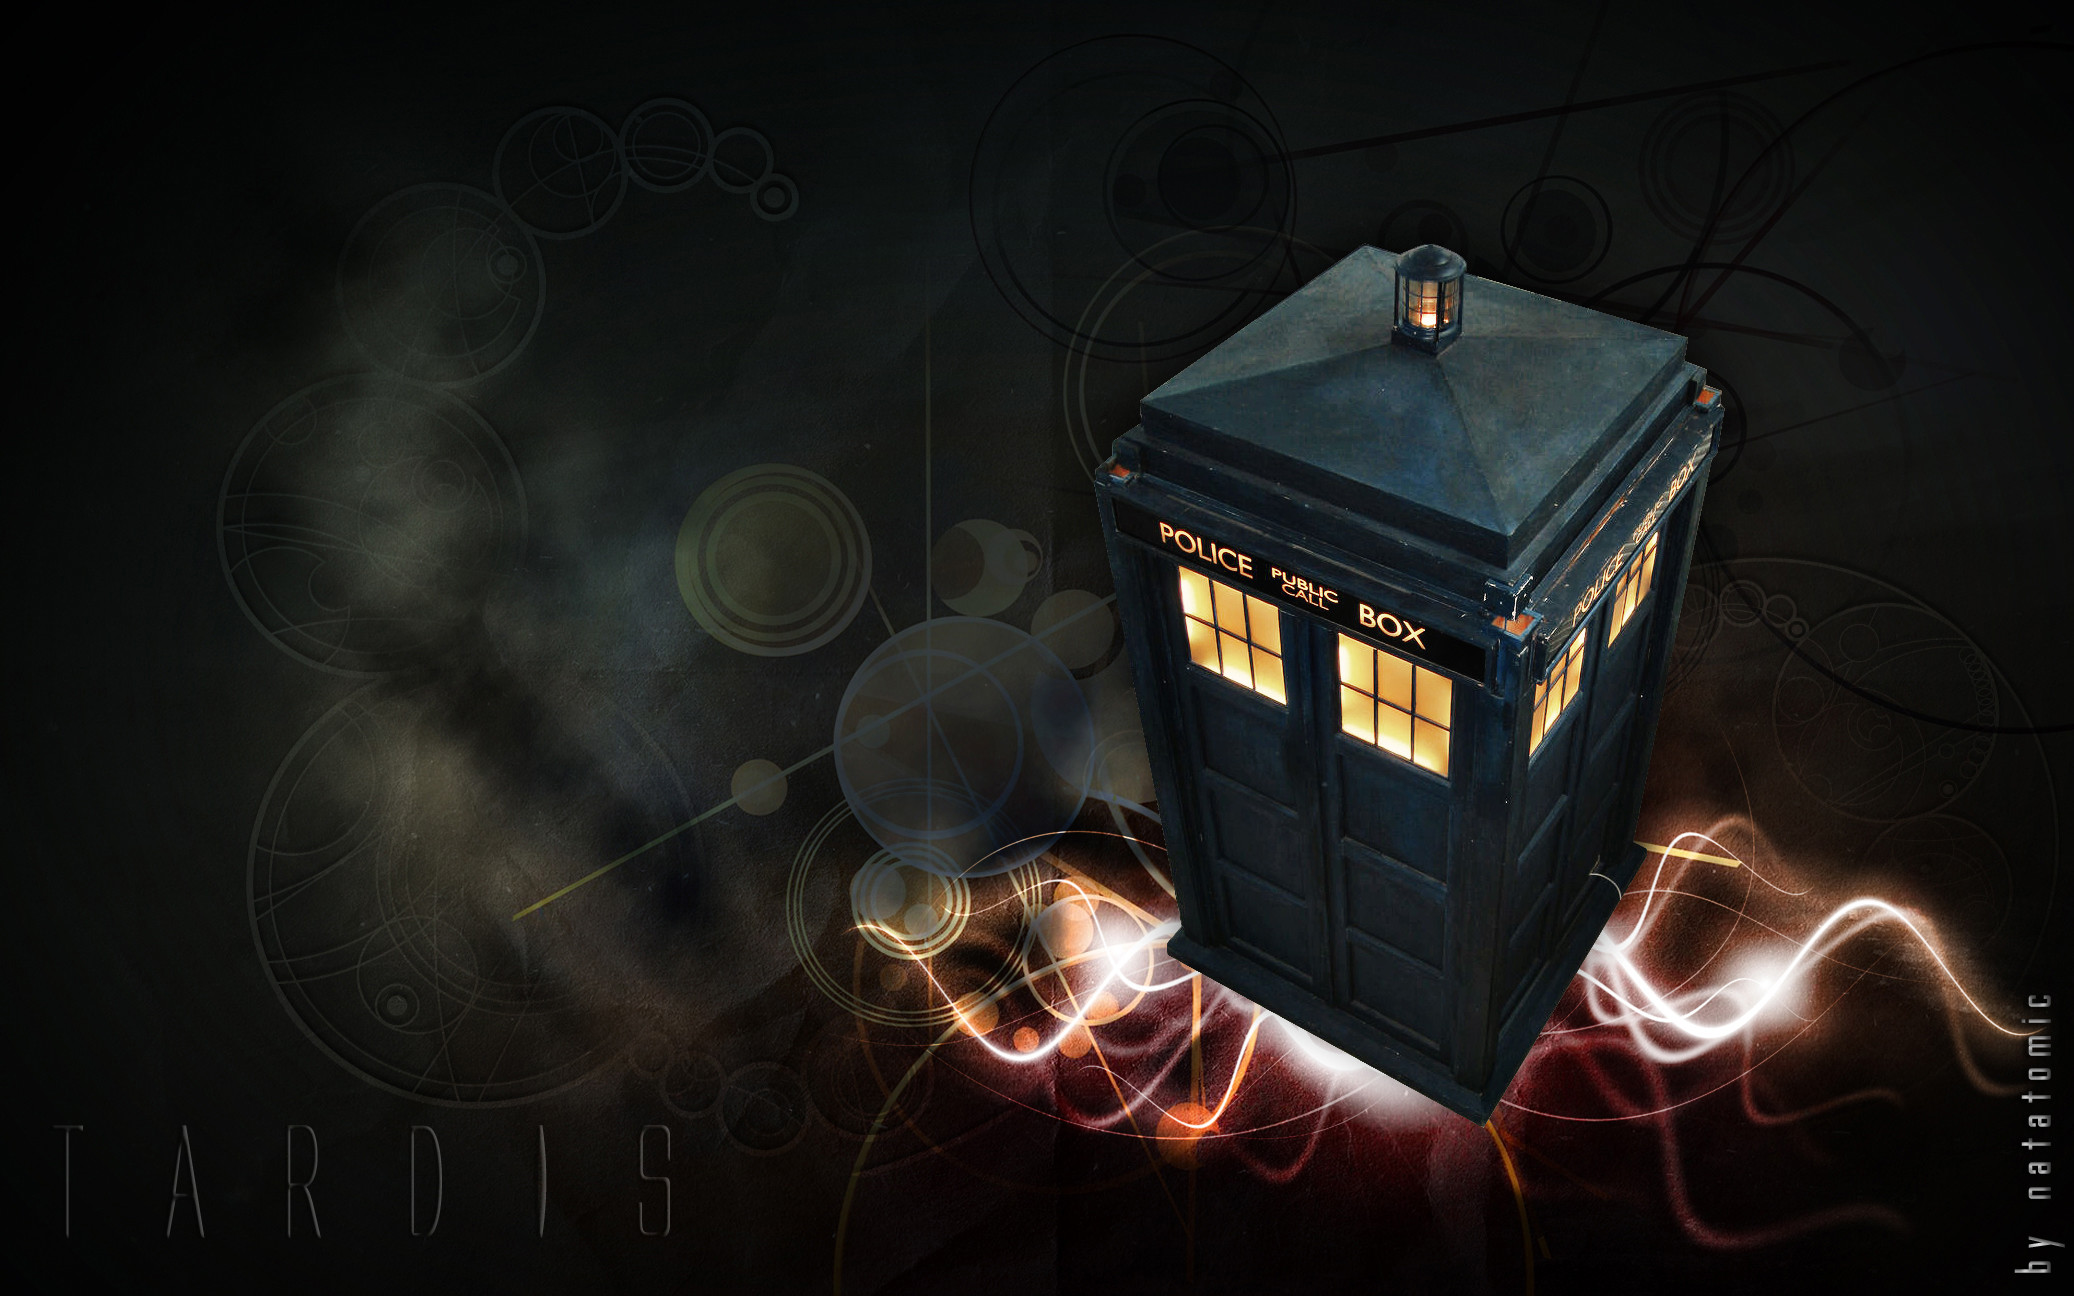 best ideas about Doctor who wallpaper on Pinterest Tardis | HD Wallpapers |  Pinterest | 3d wallpaper, Wallpaper and Hd wallpaper